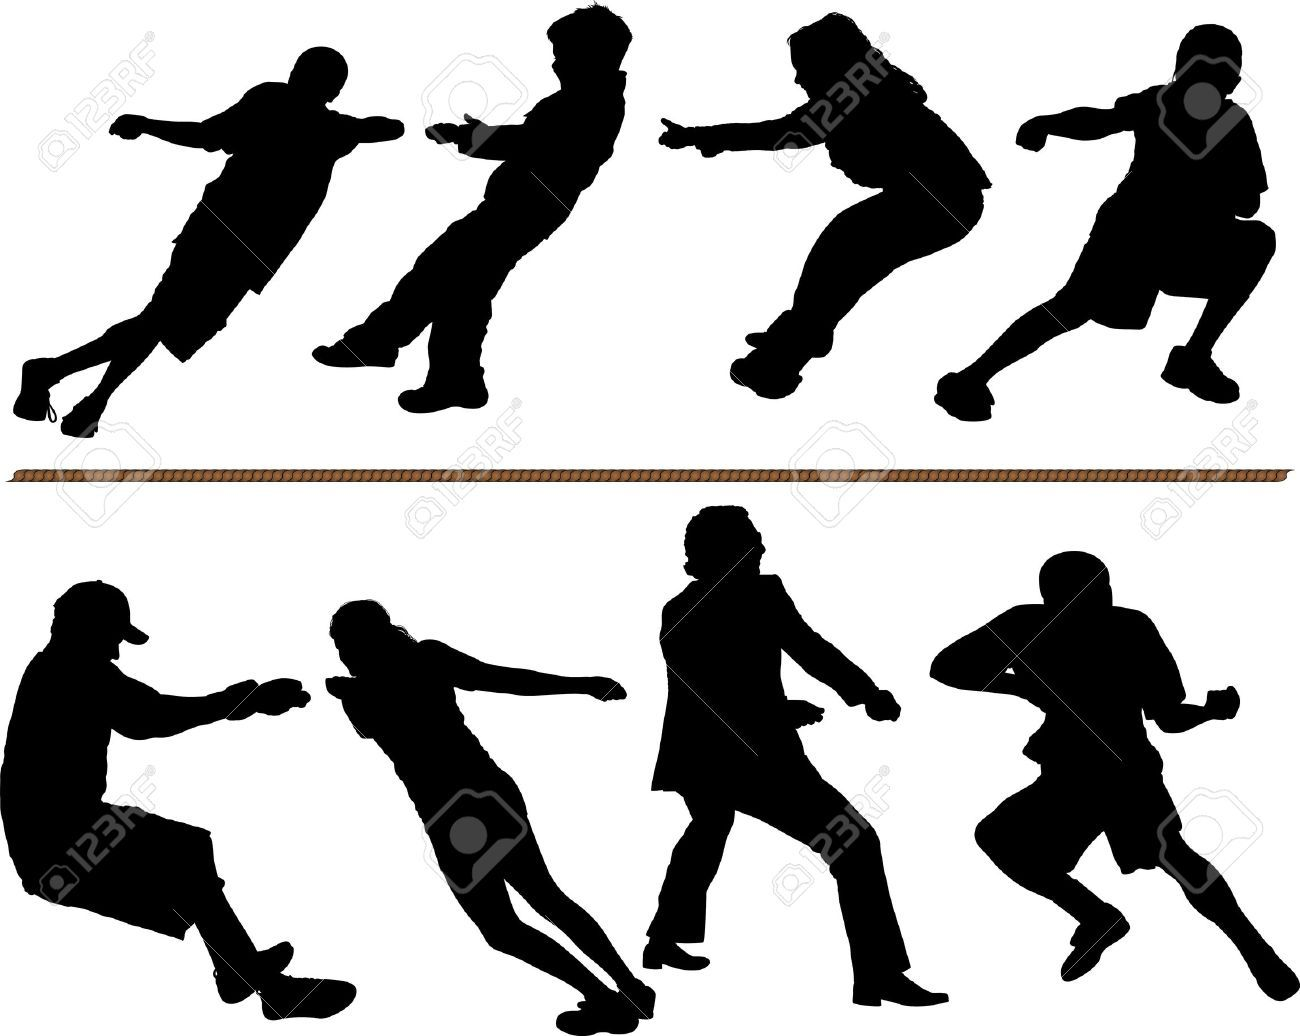 Rope clipart tug war rope #2443.